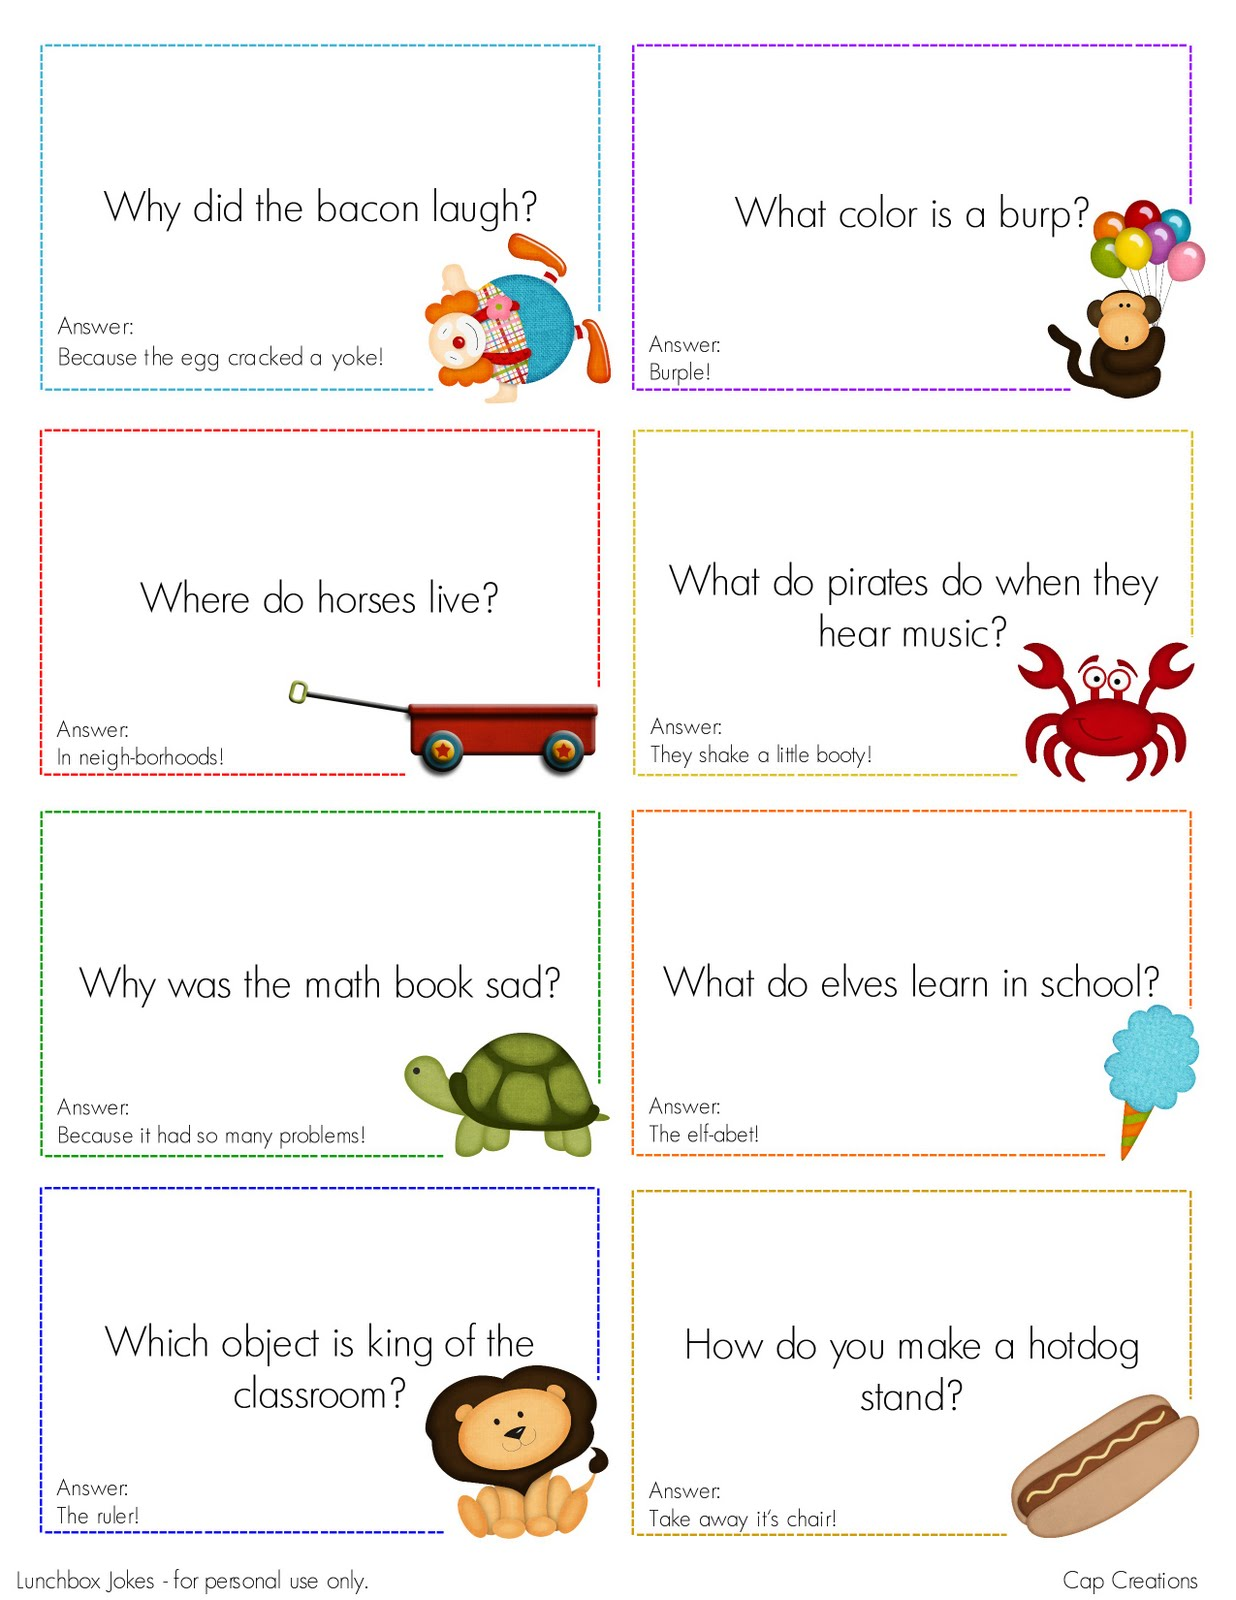 Cap Creations Free Printable Lunchbox Joke Cards